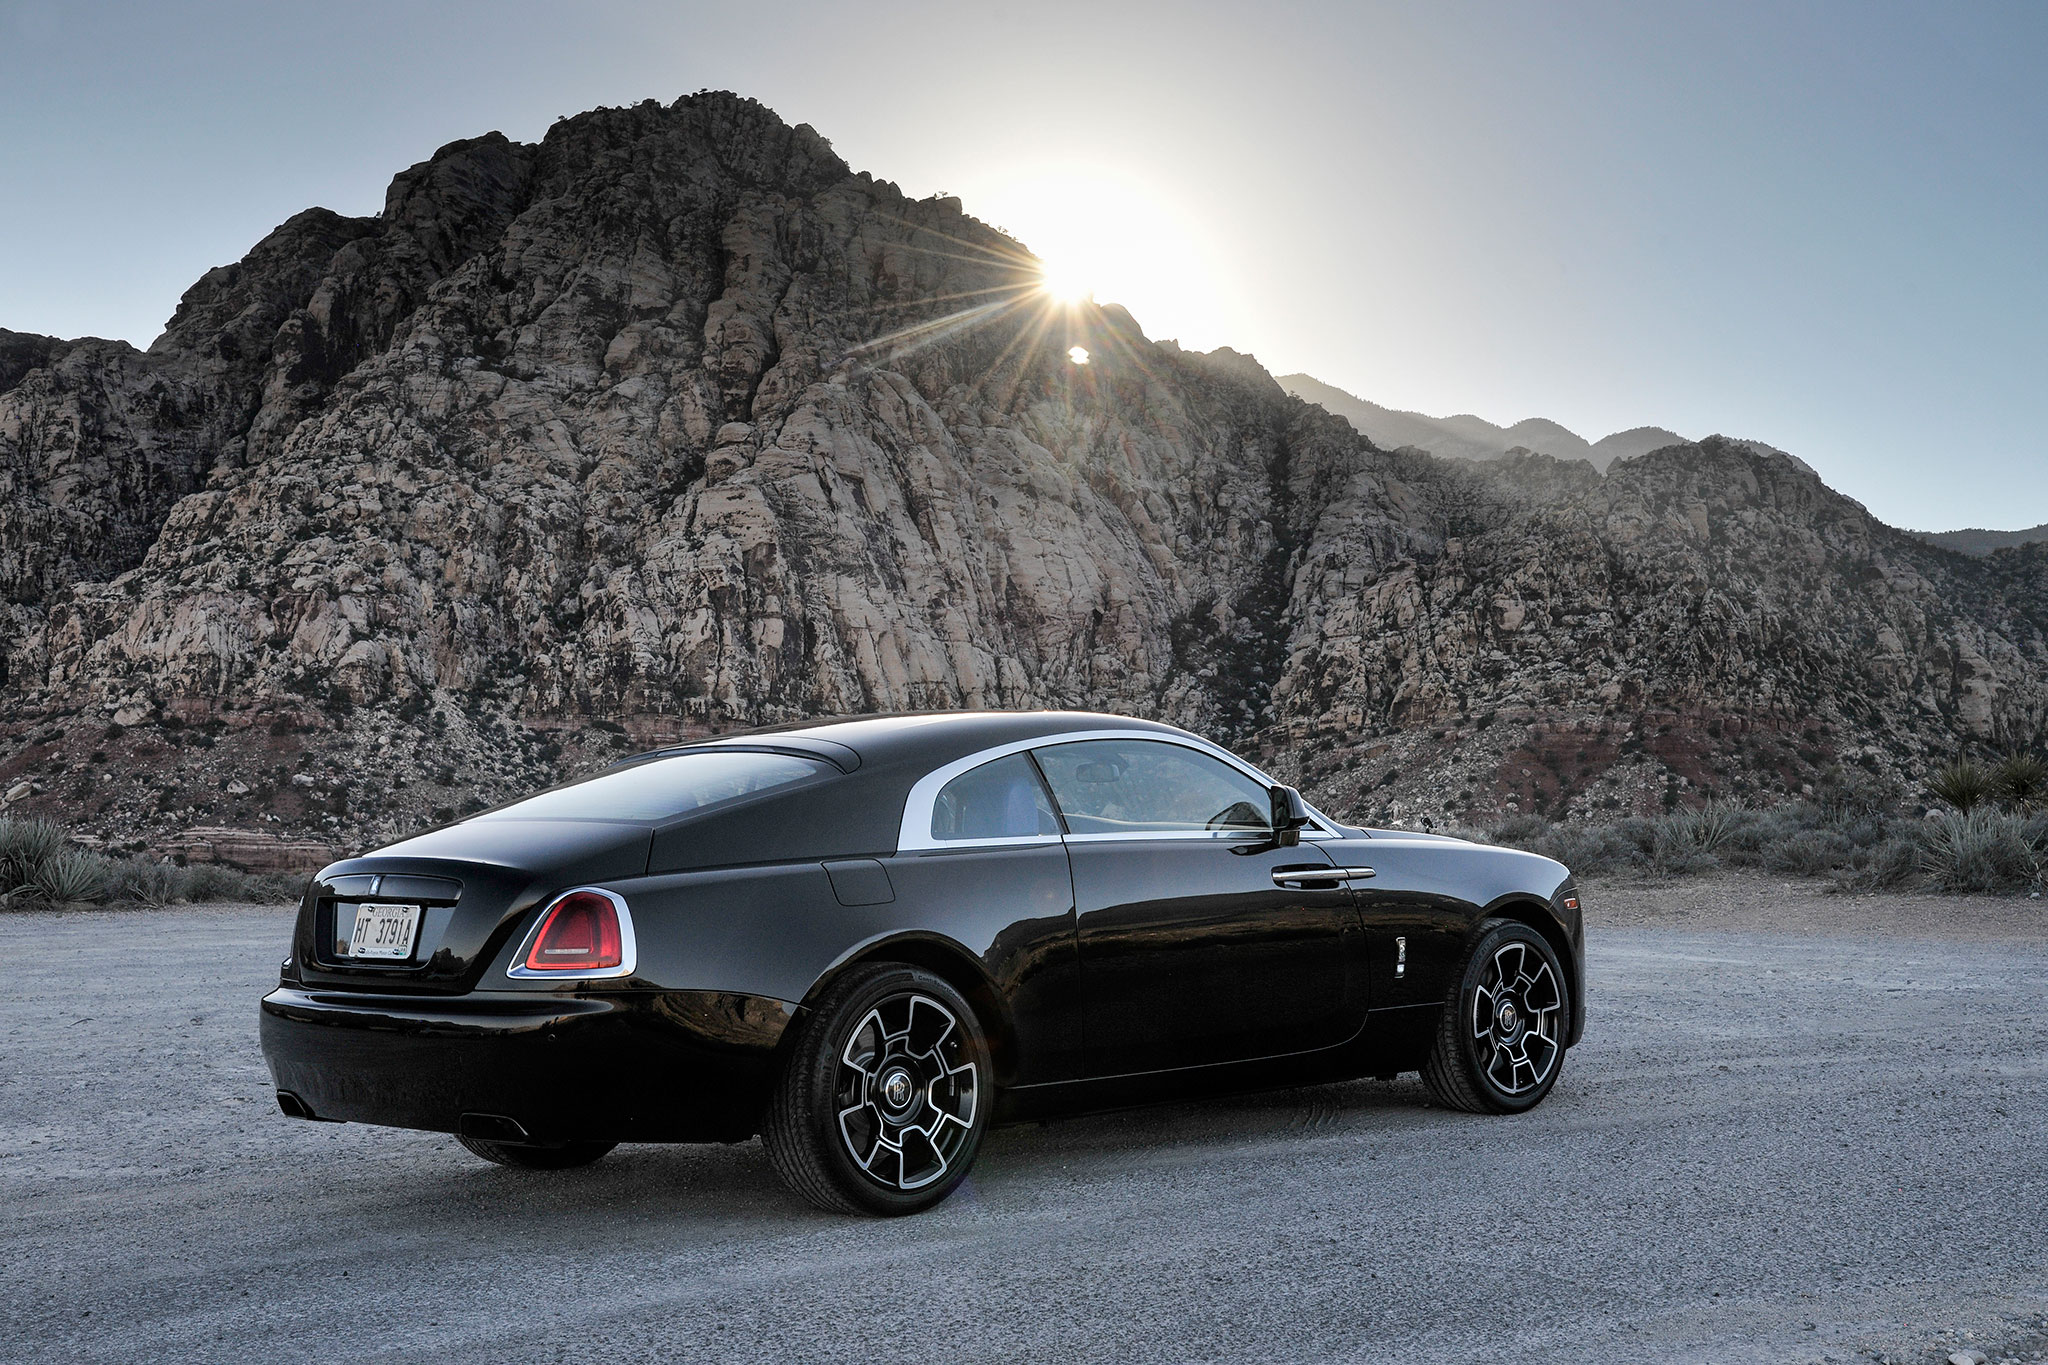 Rolls Royce Wraith Msrp >> 2017 Rolls-Royce Wraith Black Badge First Drive